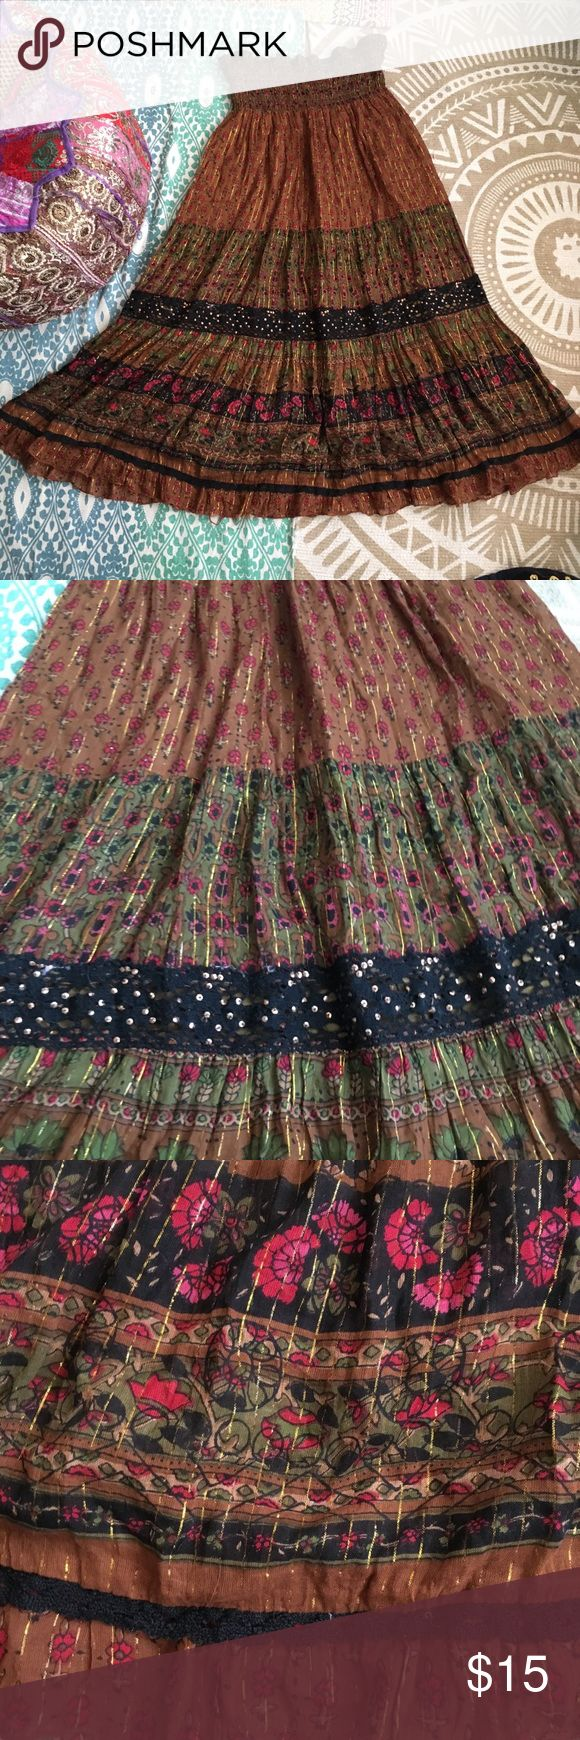 Angie tube dress sparkly tiered hippie maxi skirt Gorgeous thanksgiving colors and sparkly for parties galore! Wear as a tube dress high up with a cardigan or wear as a full length maxi skirt! So versatile and can be worn in any season! Glittery threads and sequins are abundant! in good used condition Angie Dresses Strapless